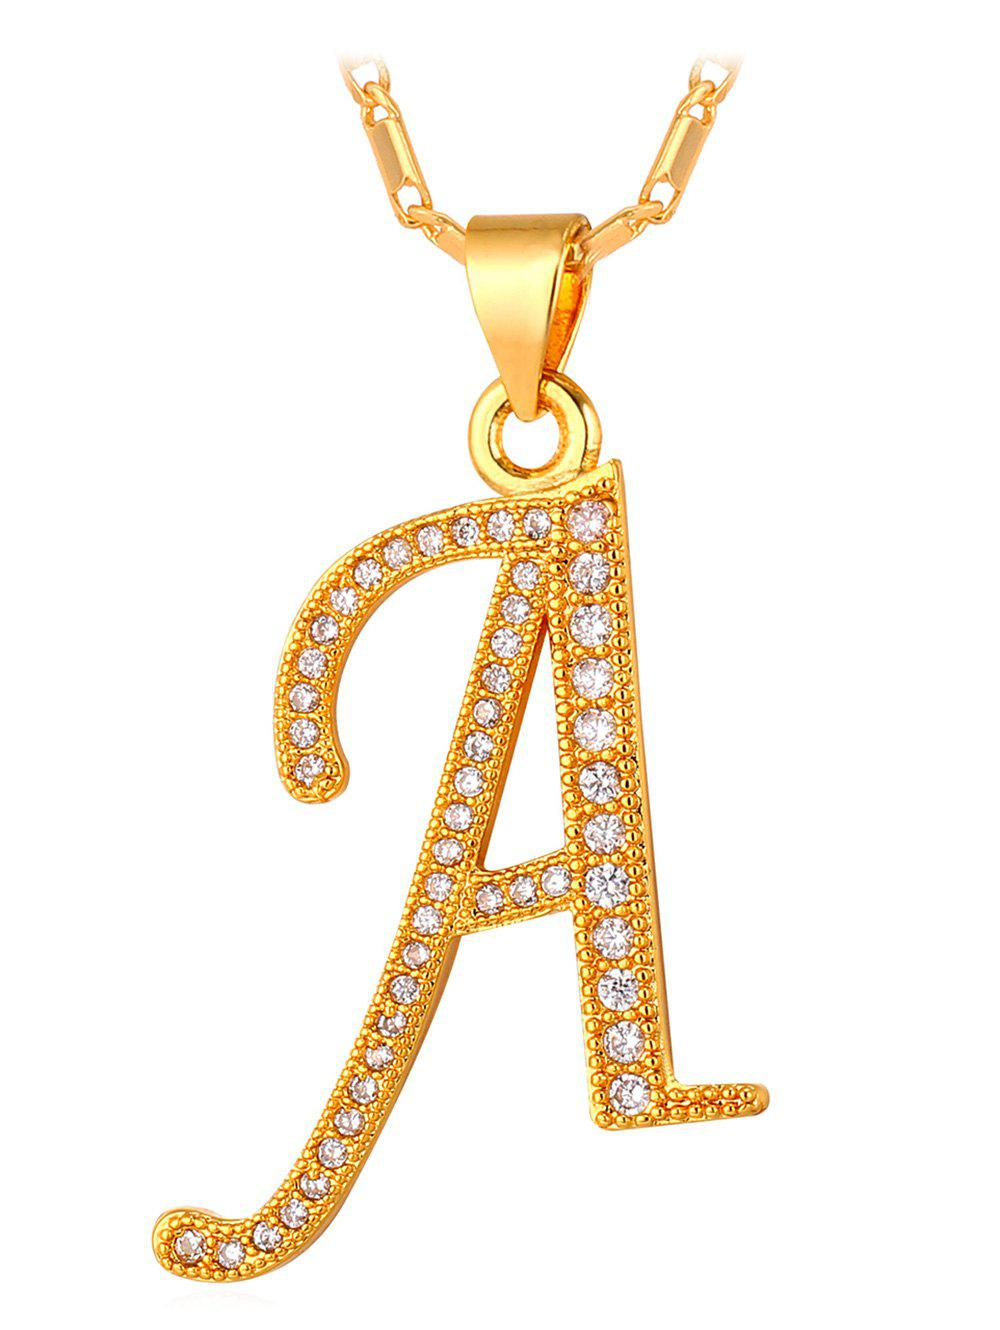 Vintage Rhinestone Capital Letter Alloy Pendant Necklace, Gold